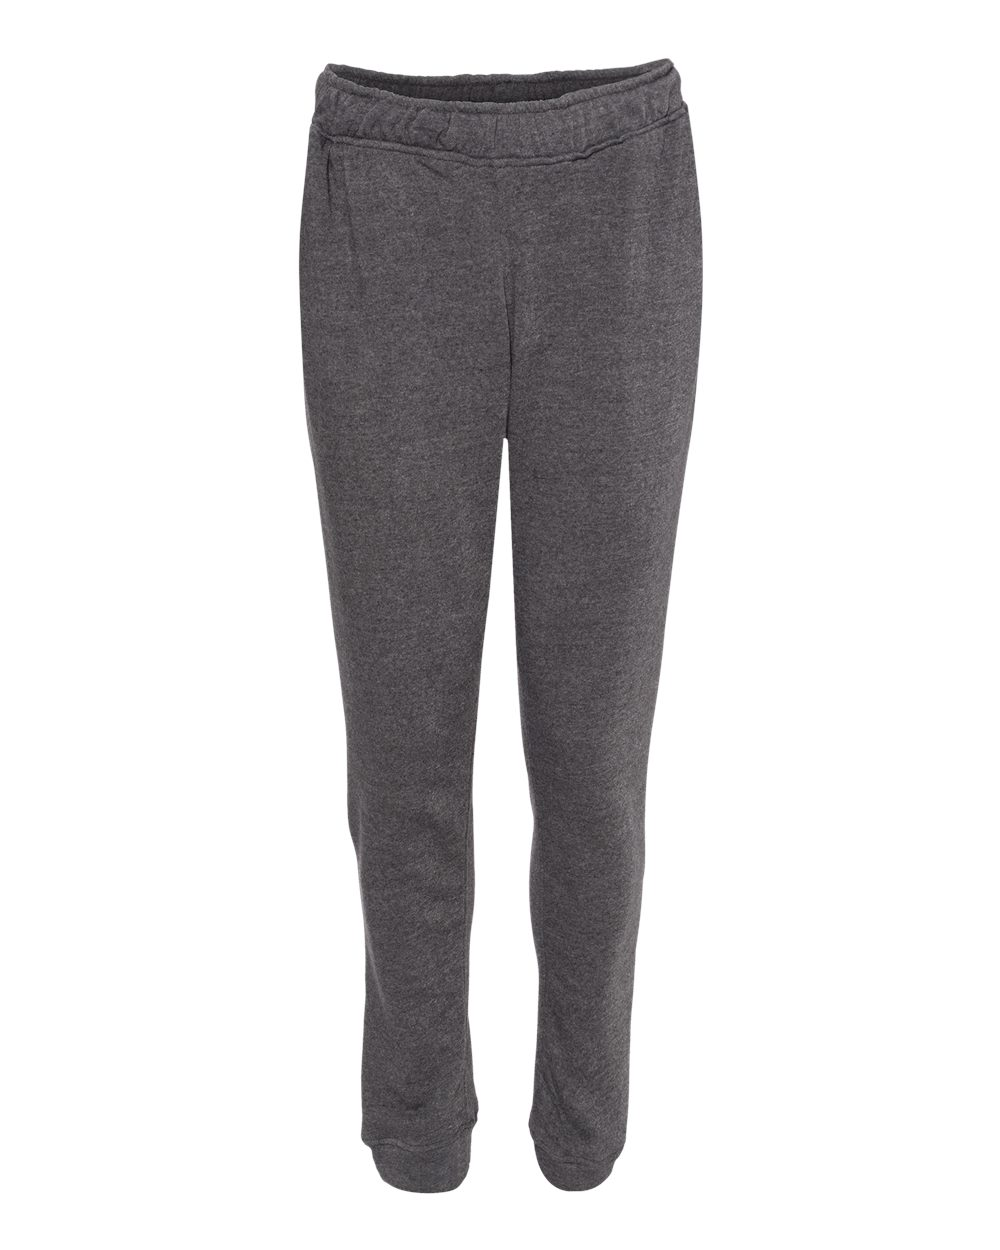 J. America - 8878 - Triblend Fleece Joggers